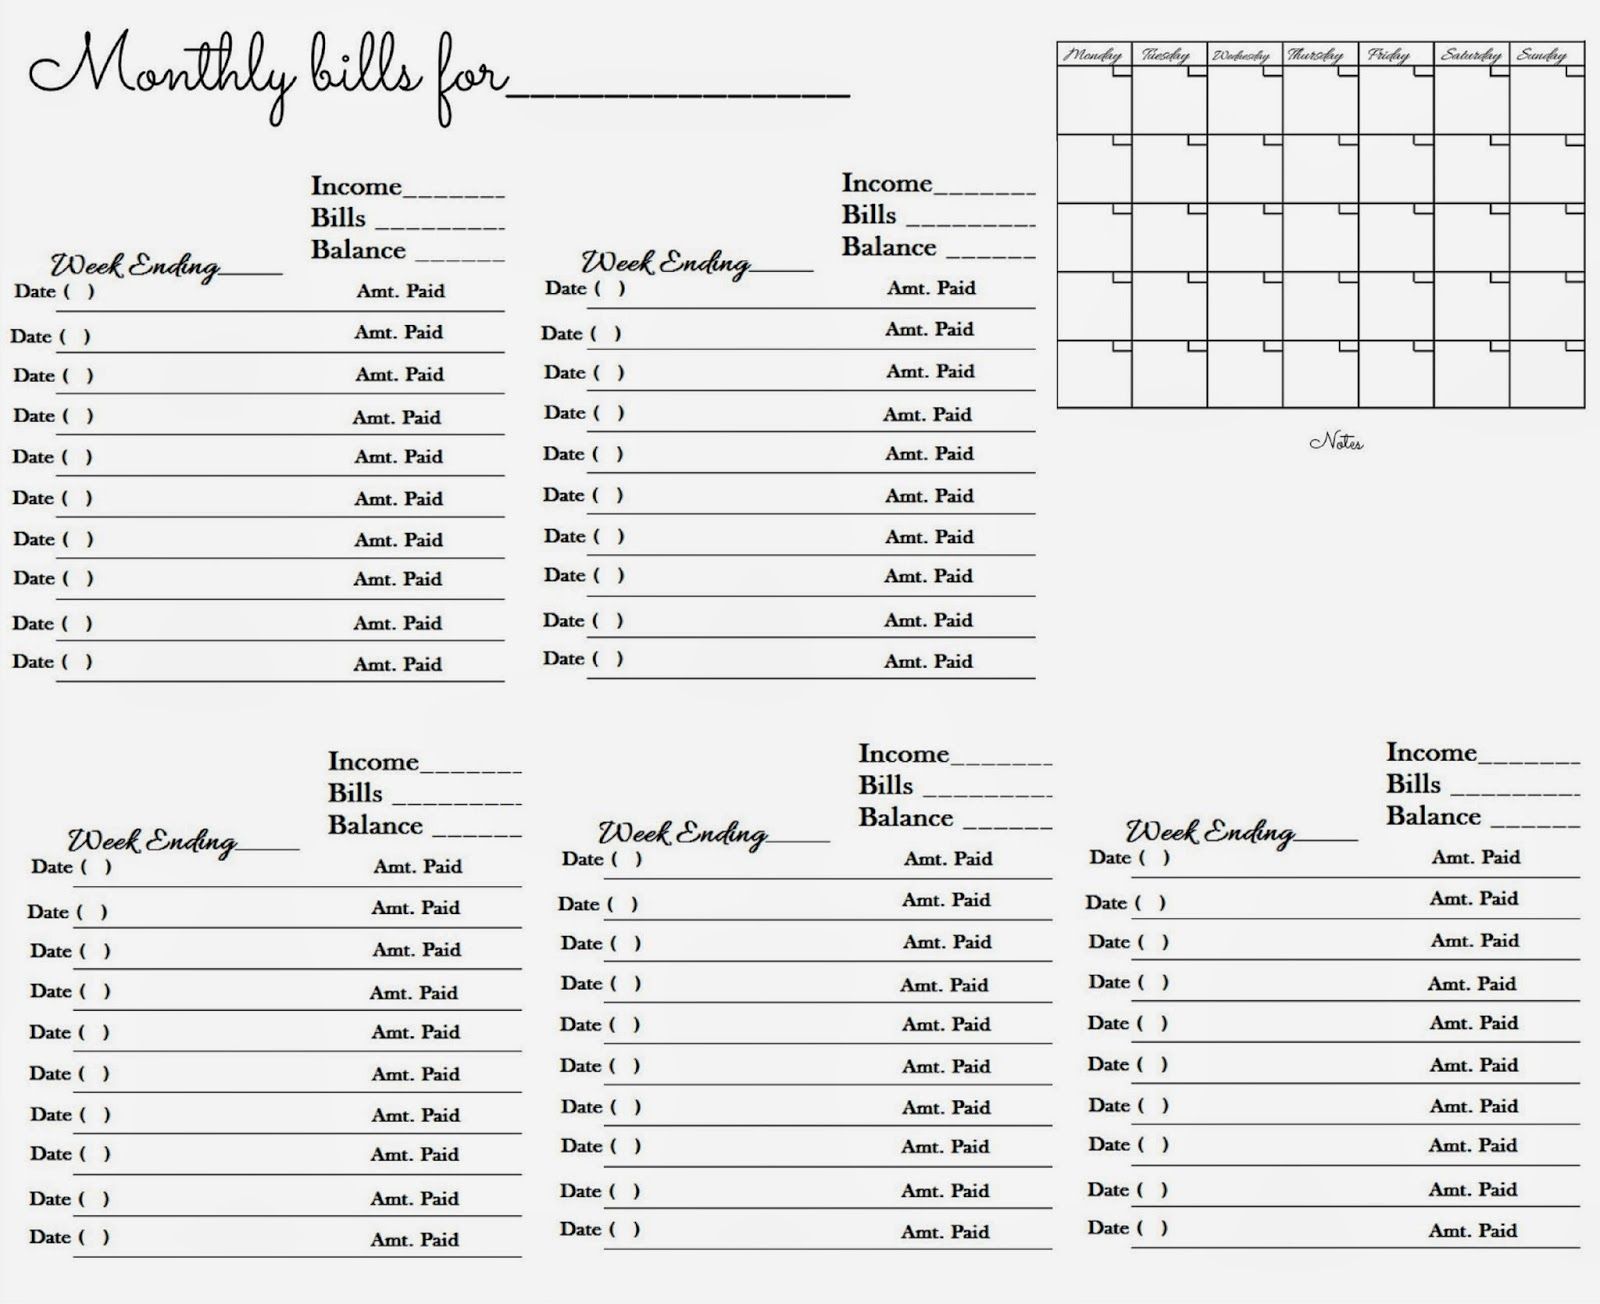 glenda s world worksheet to keep track of paid monthly bills